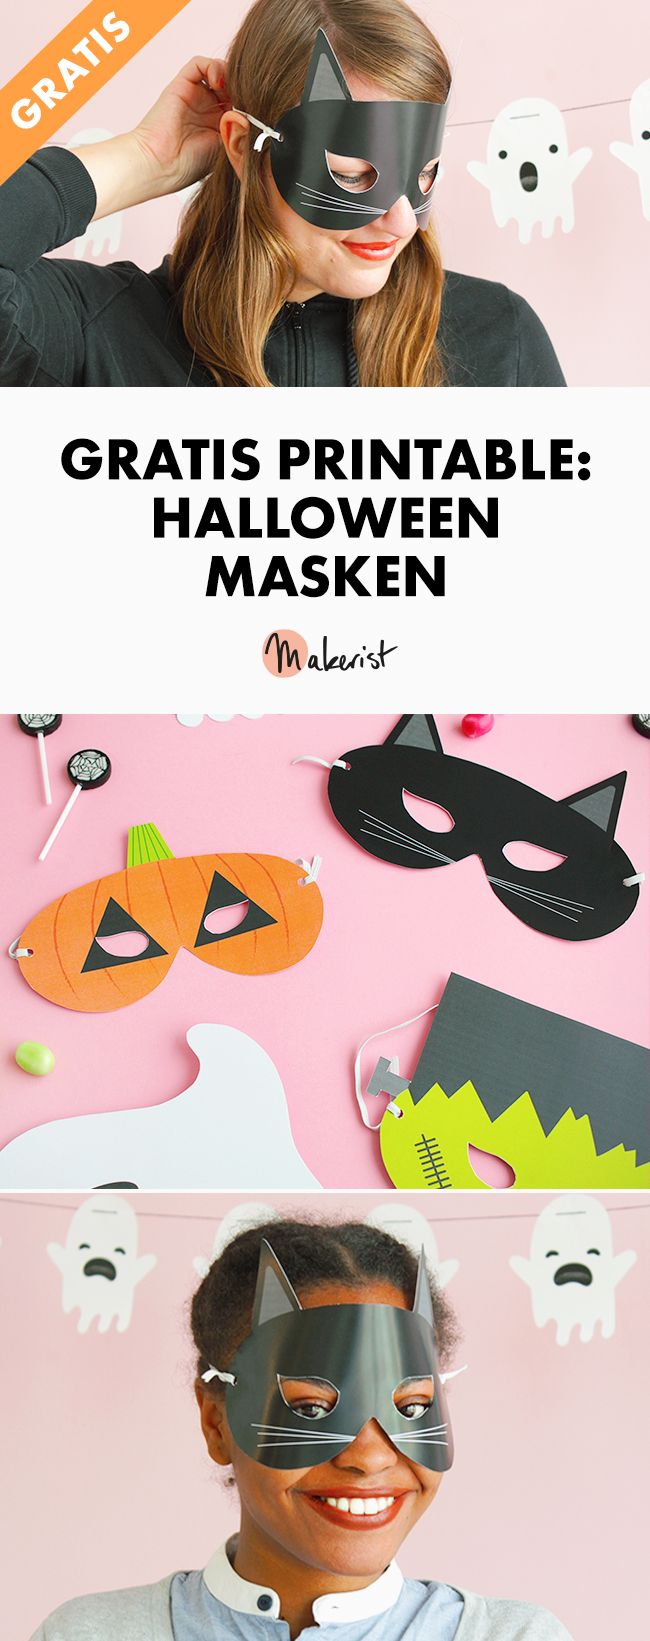 Makerist free printable halloween mask pin